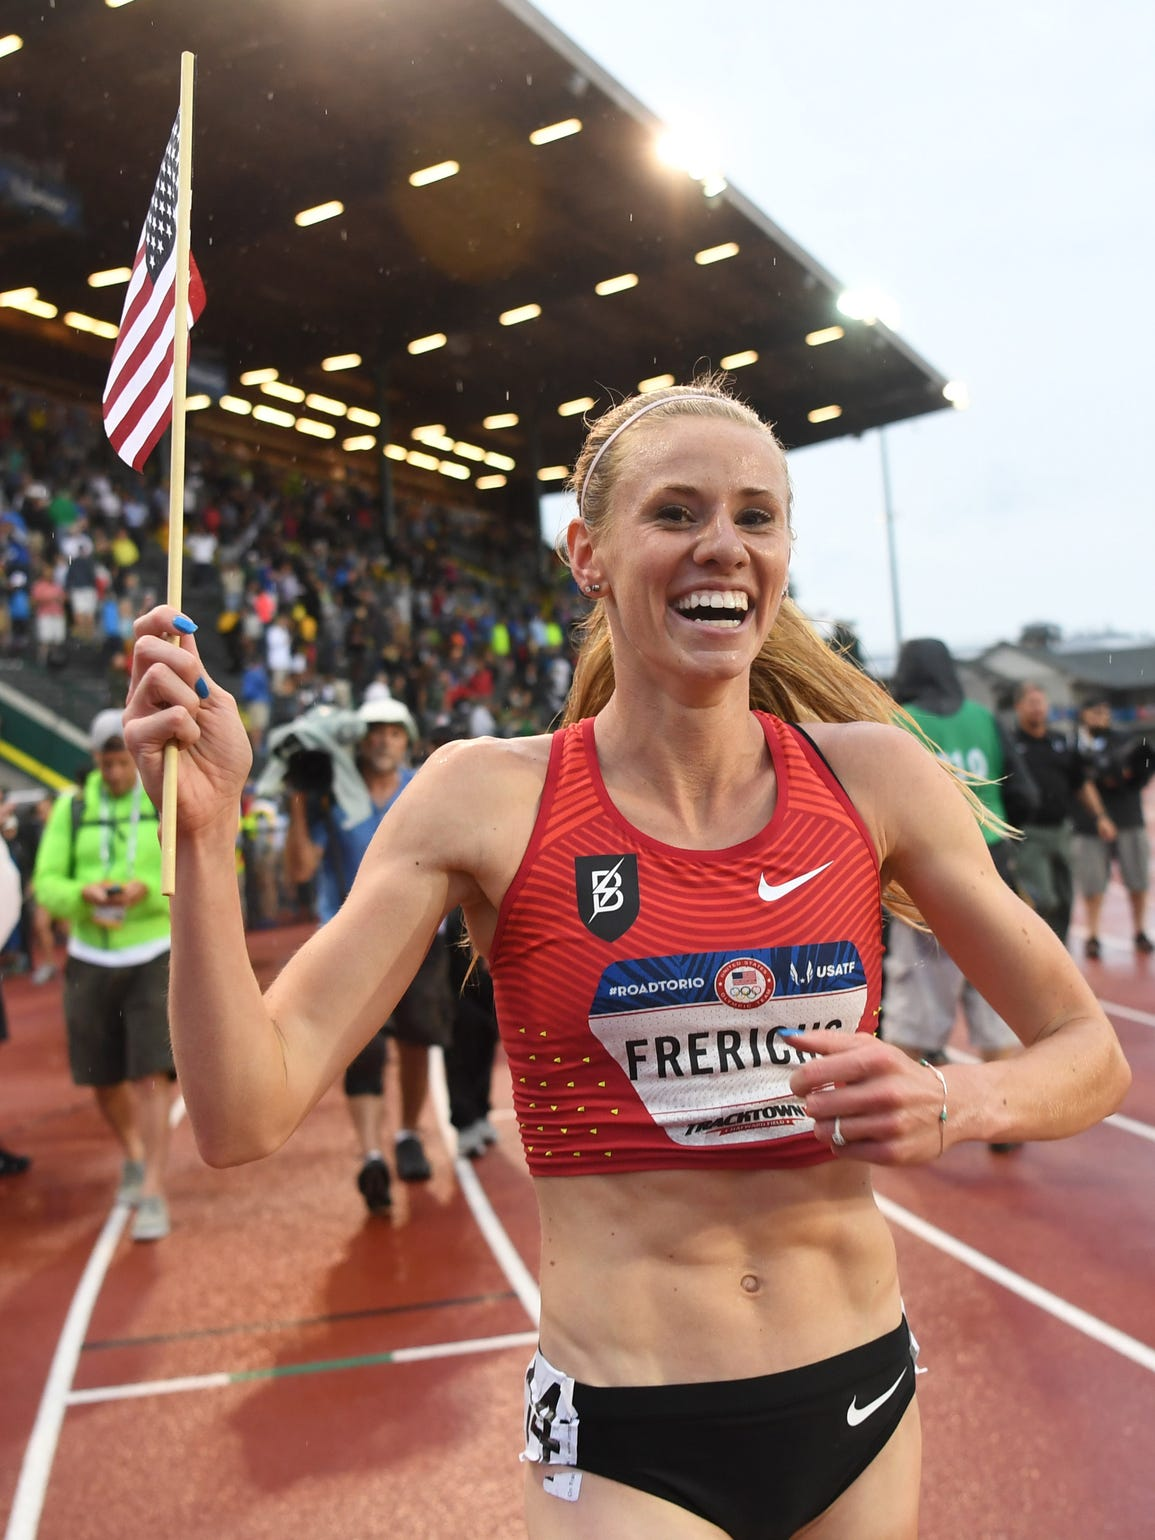 Courtney Frerichs turned in the fourth-best time in